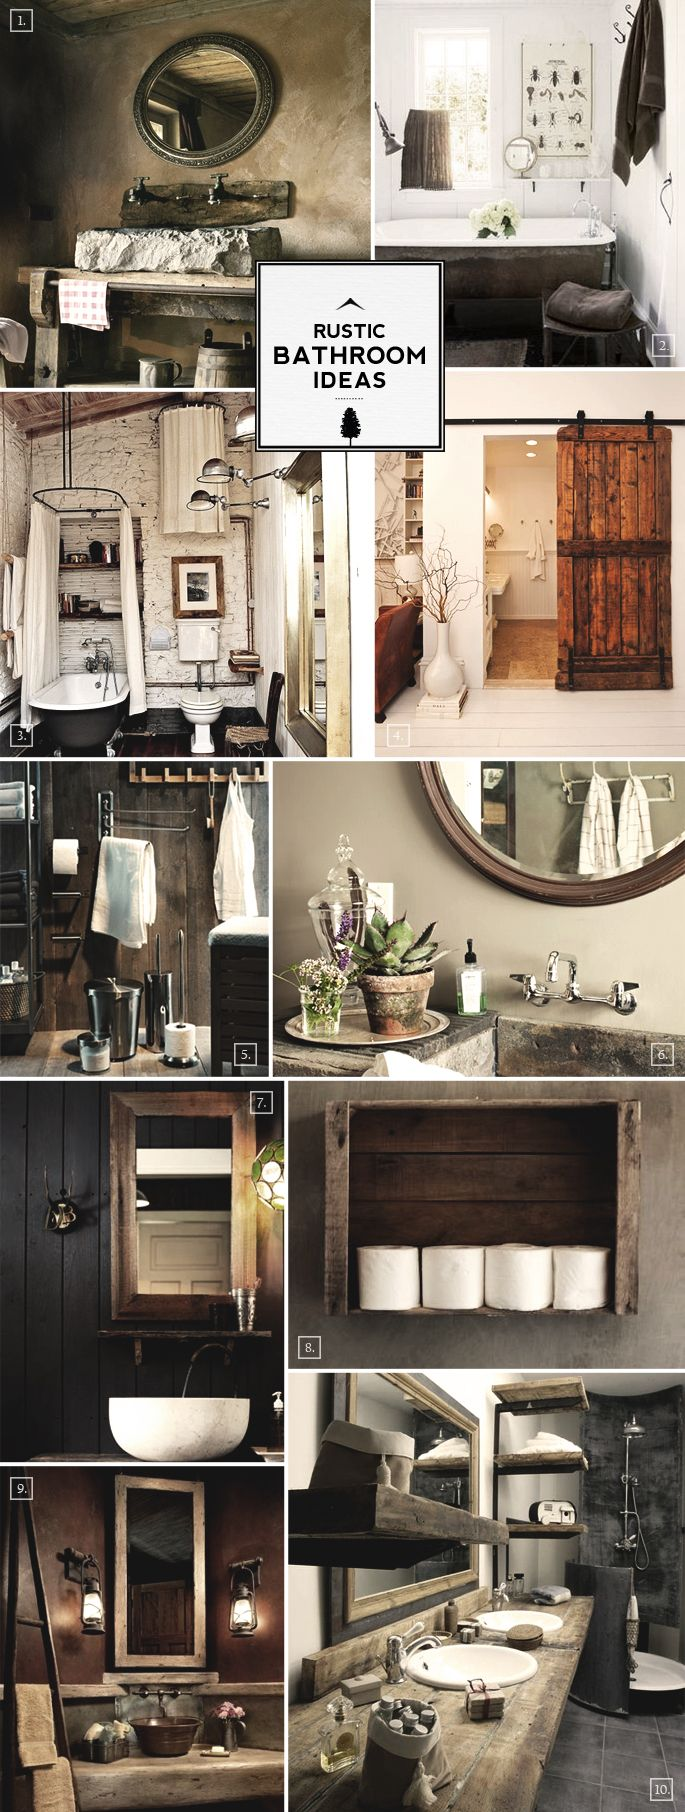 Rustic bathroom decor on pinterest vessel sink bathroom for Bathroom decor inspiration